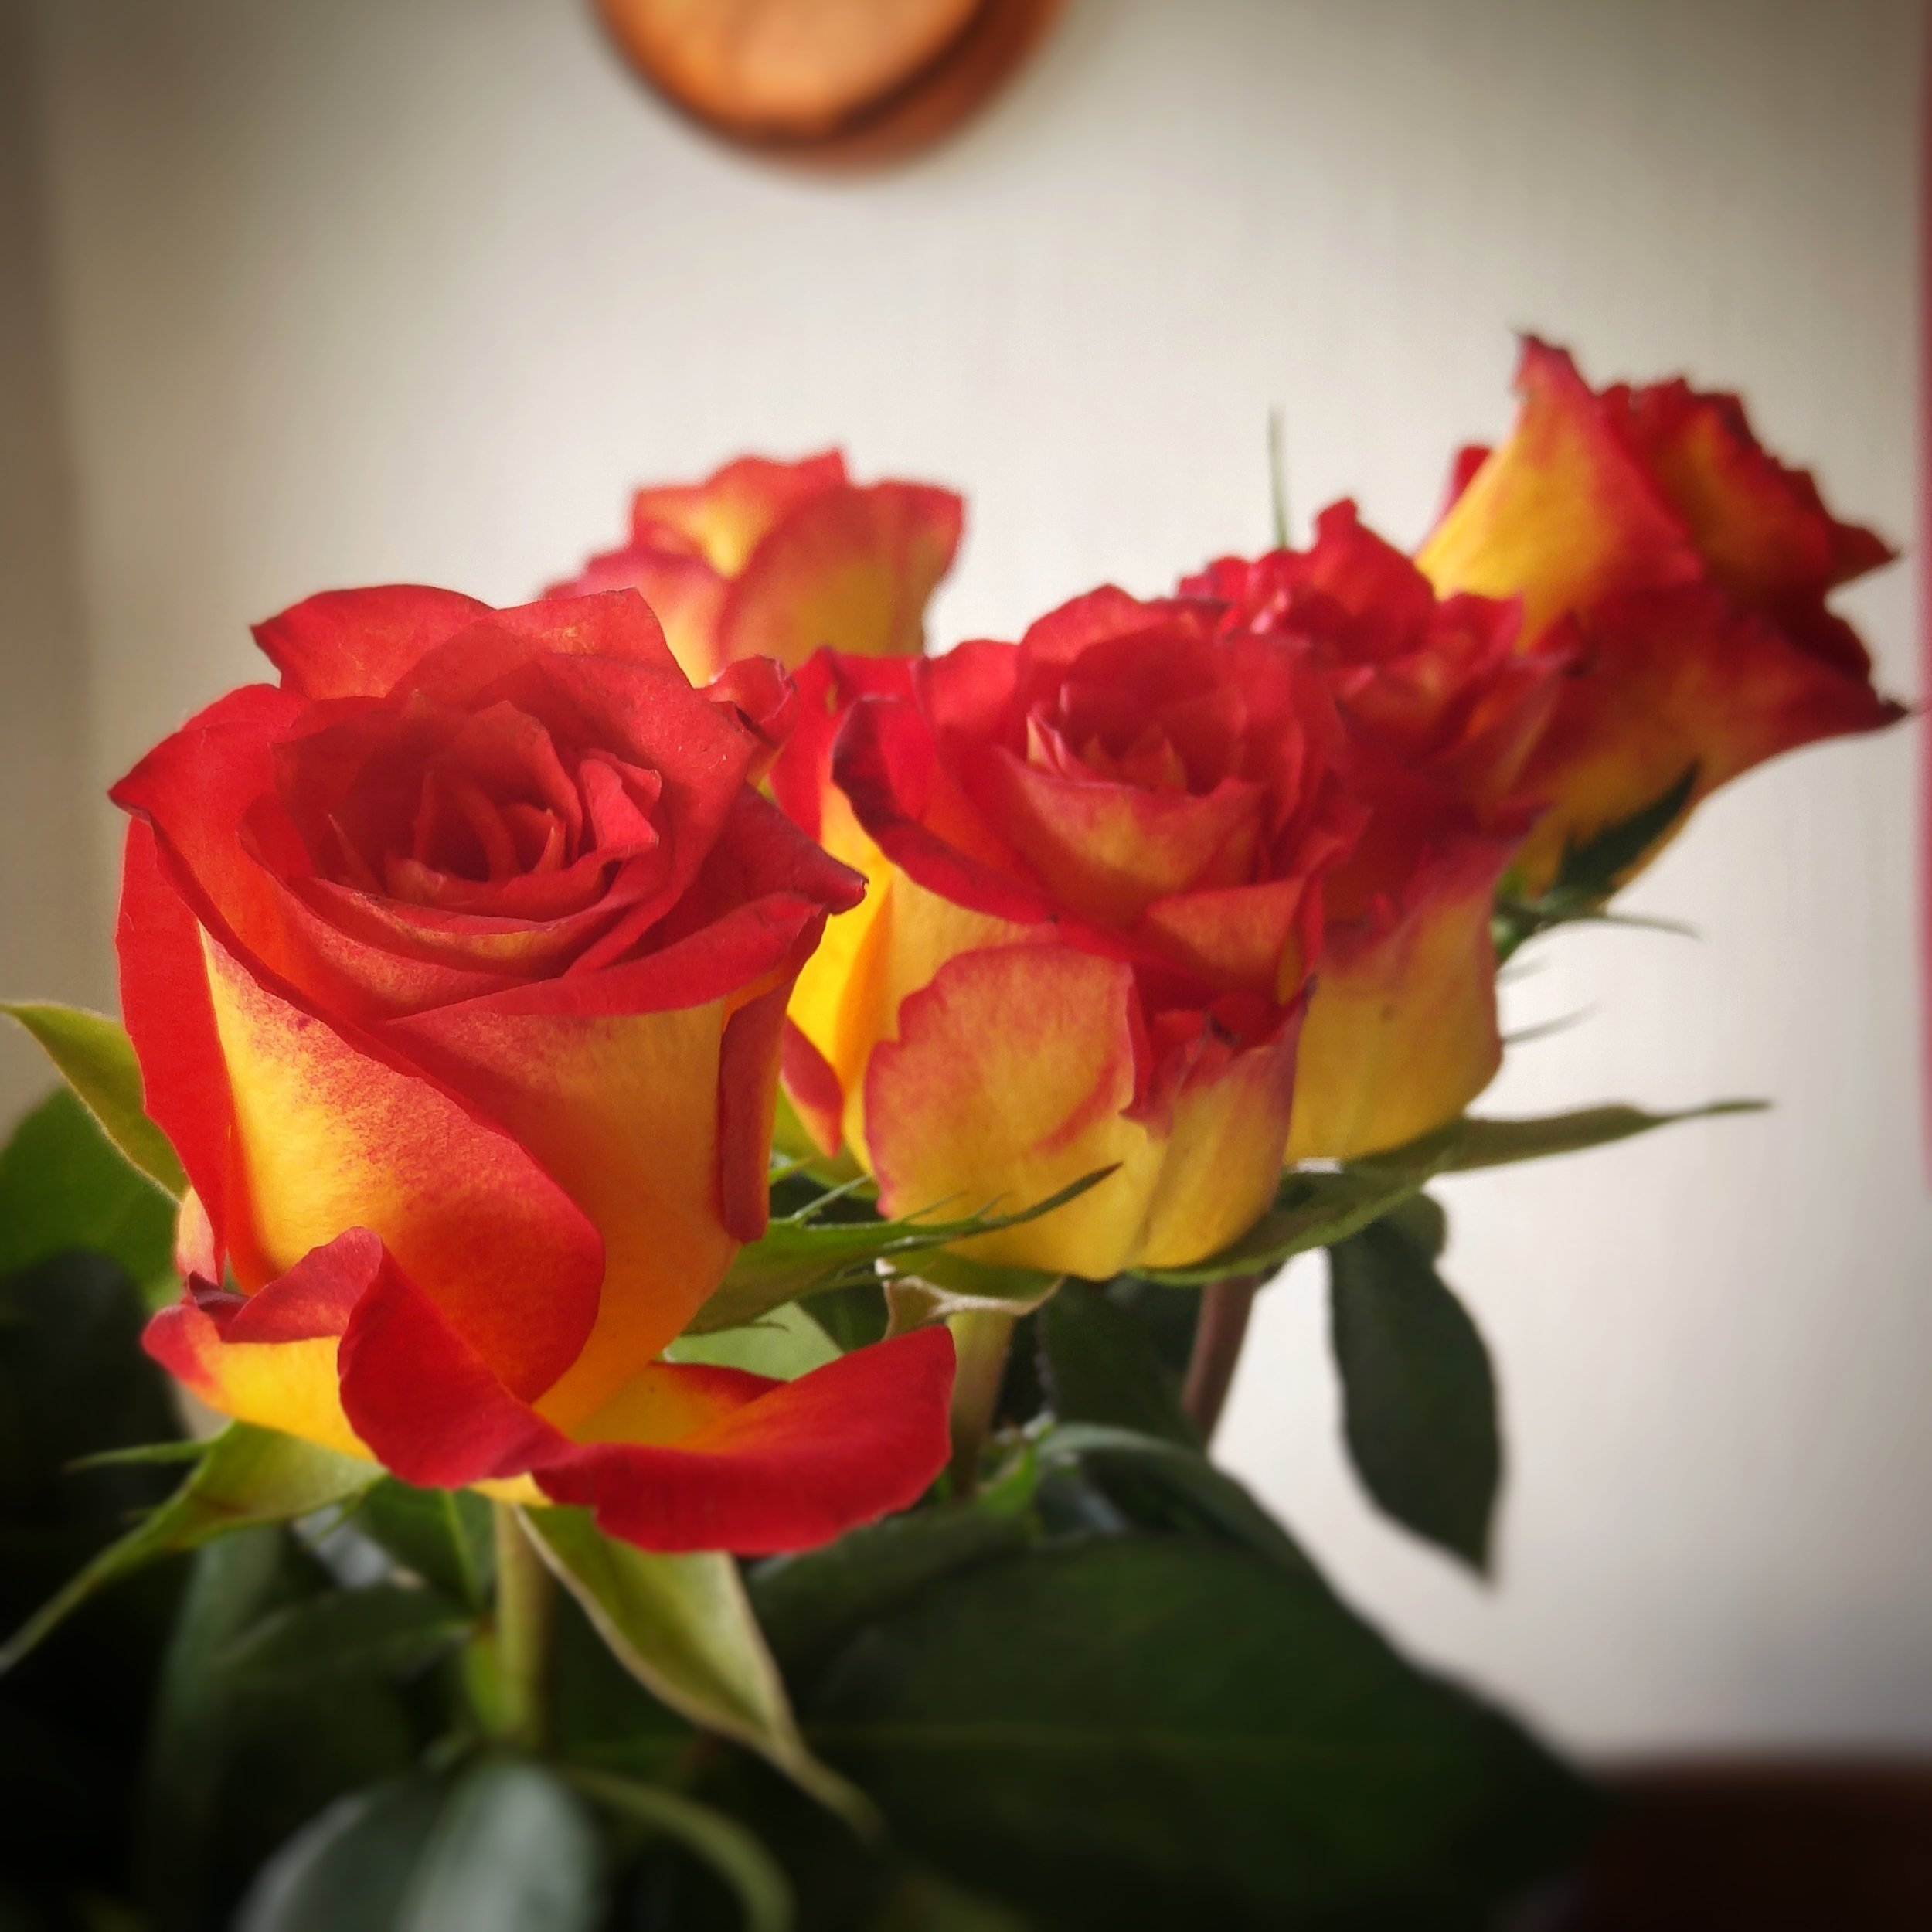 October 14 -  Day 288: Roses on Dad's birthday